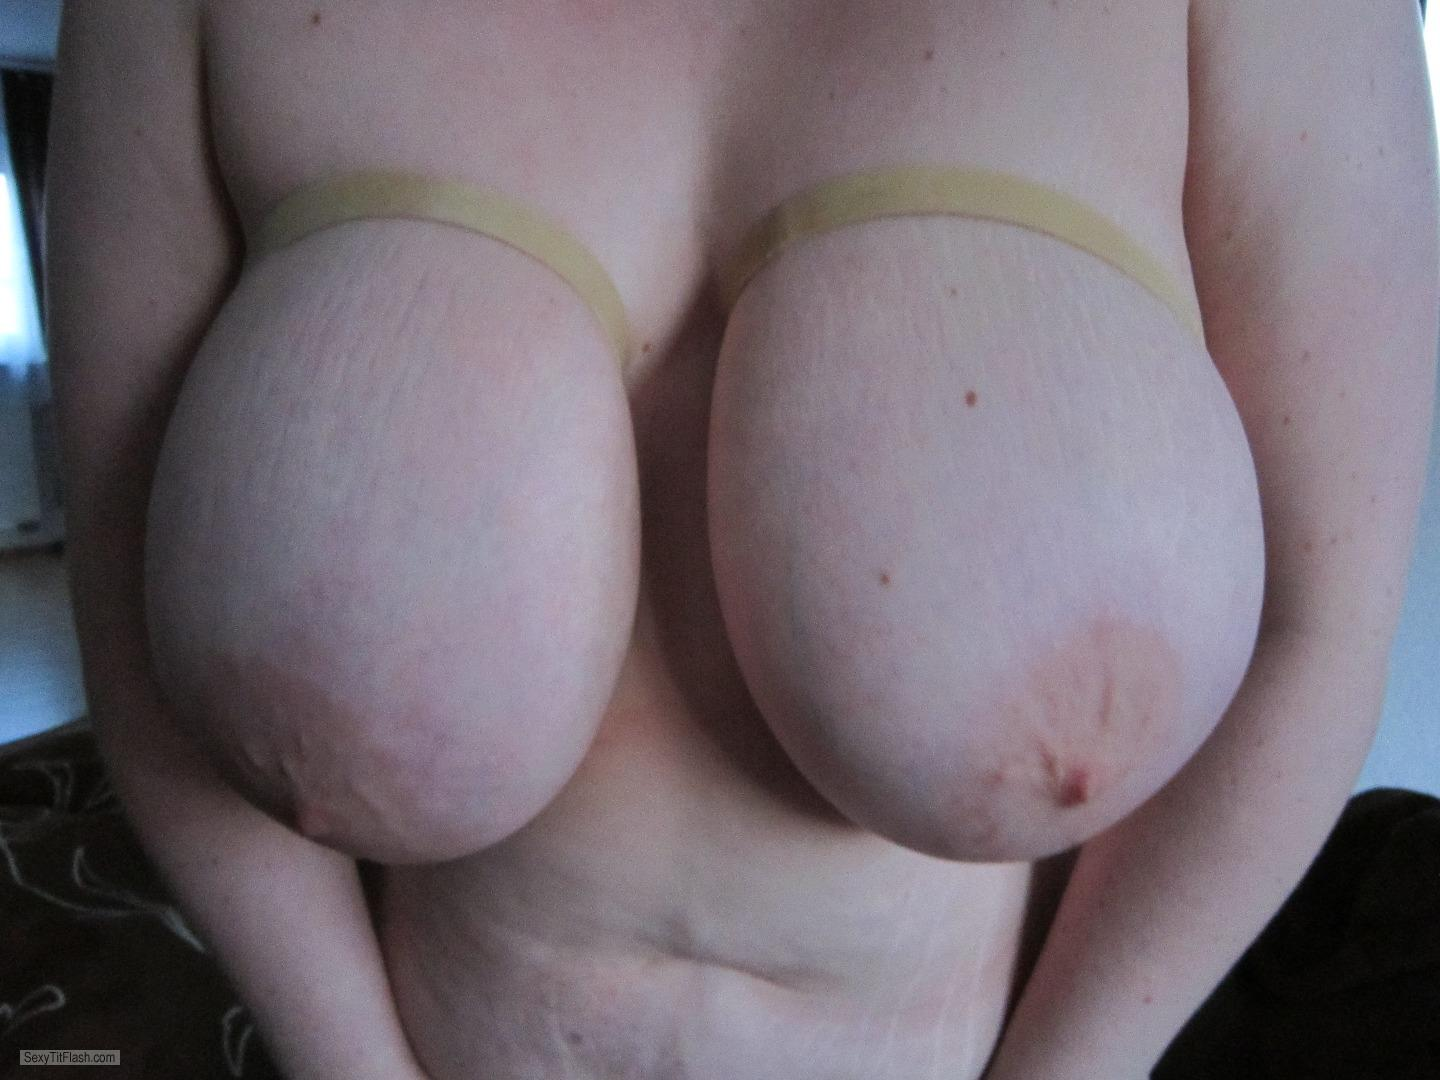 Tit Flash: Girlfriend's Extremely Big Tits - Busi from Germany